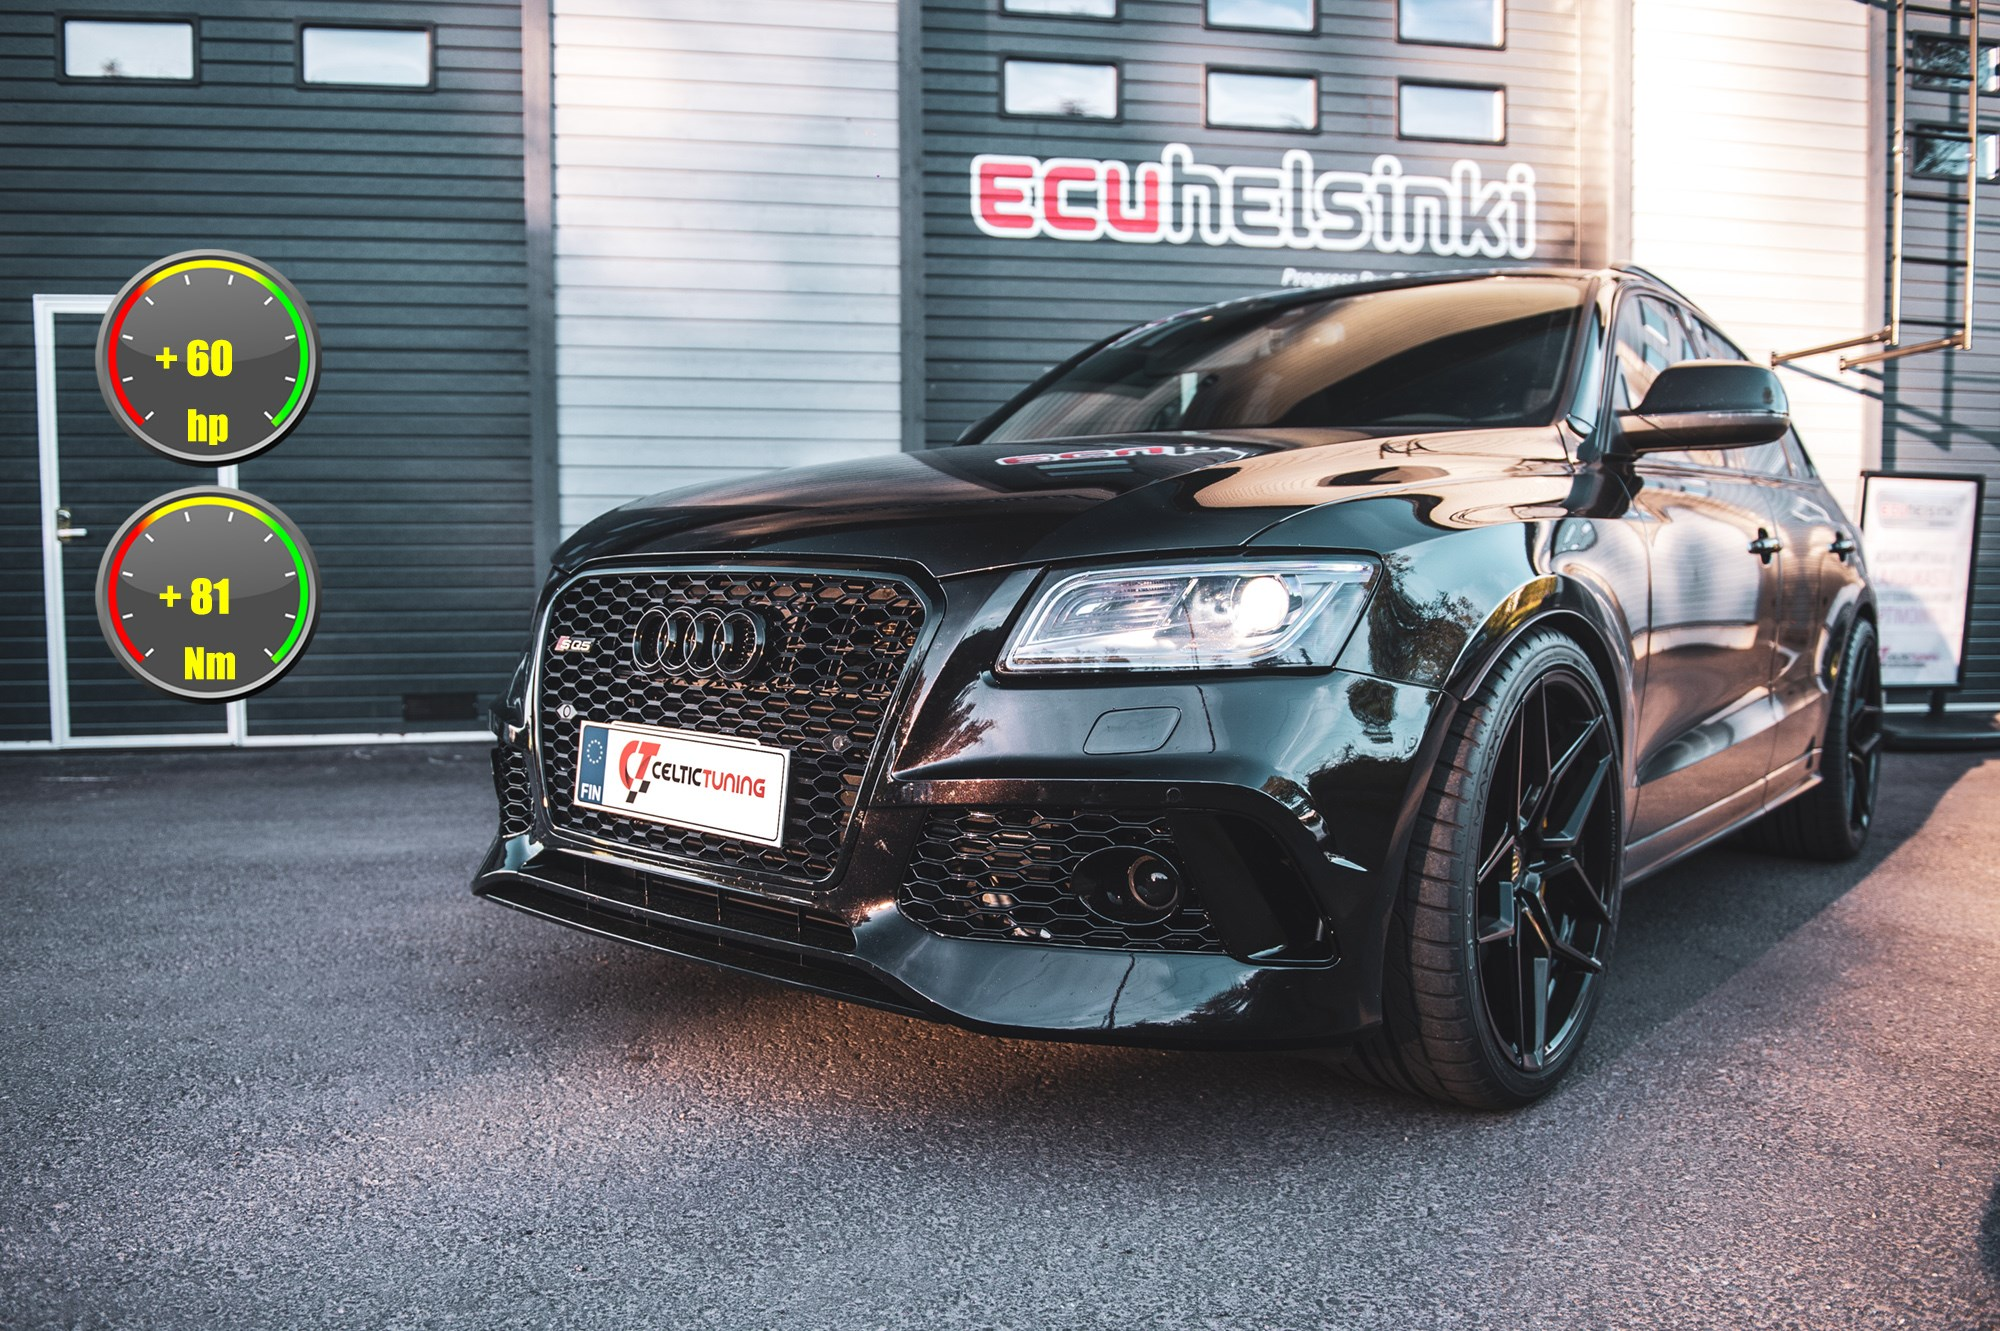 Audi SQ5 lastutus celtic tuning